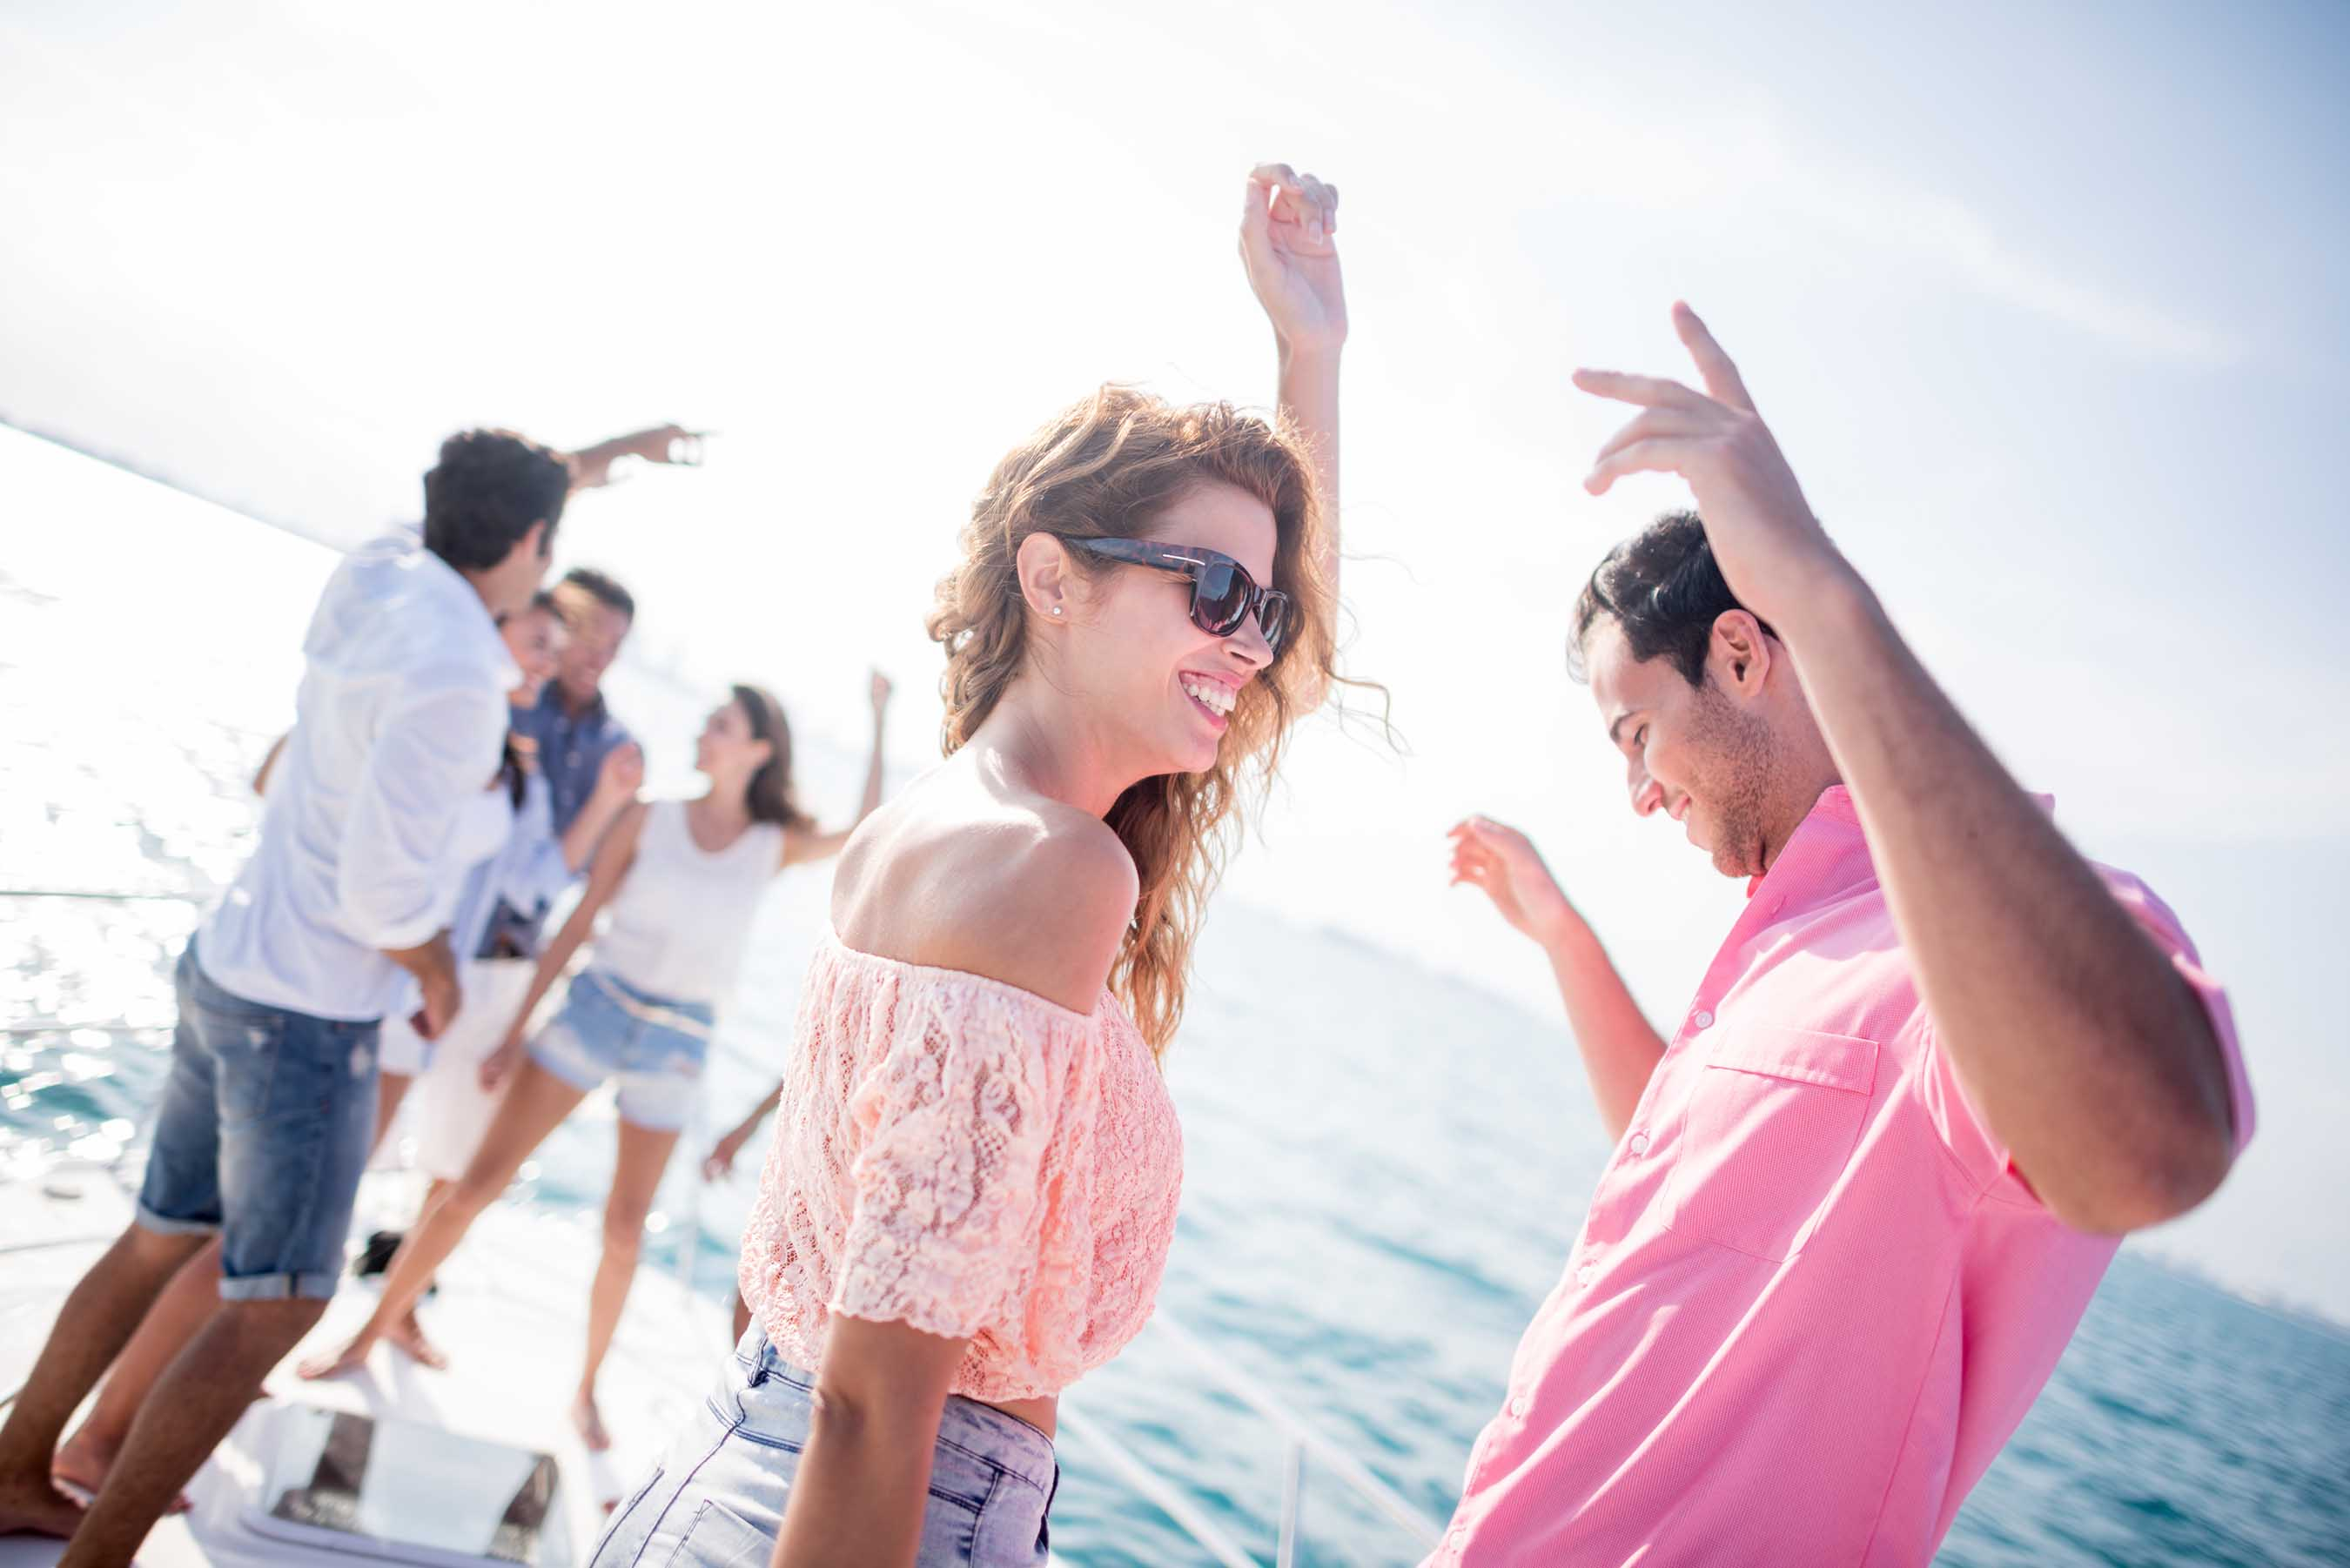 Dancing outside by a yacht